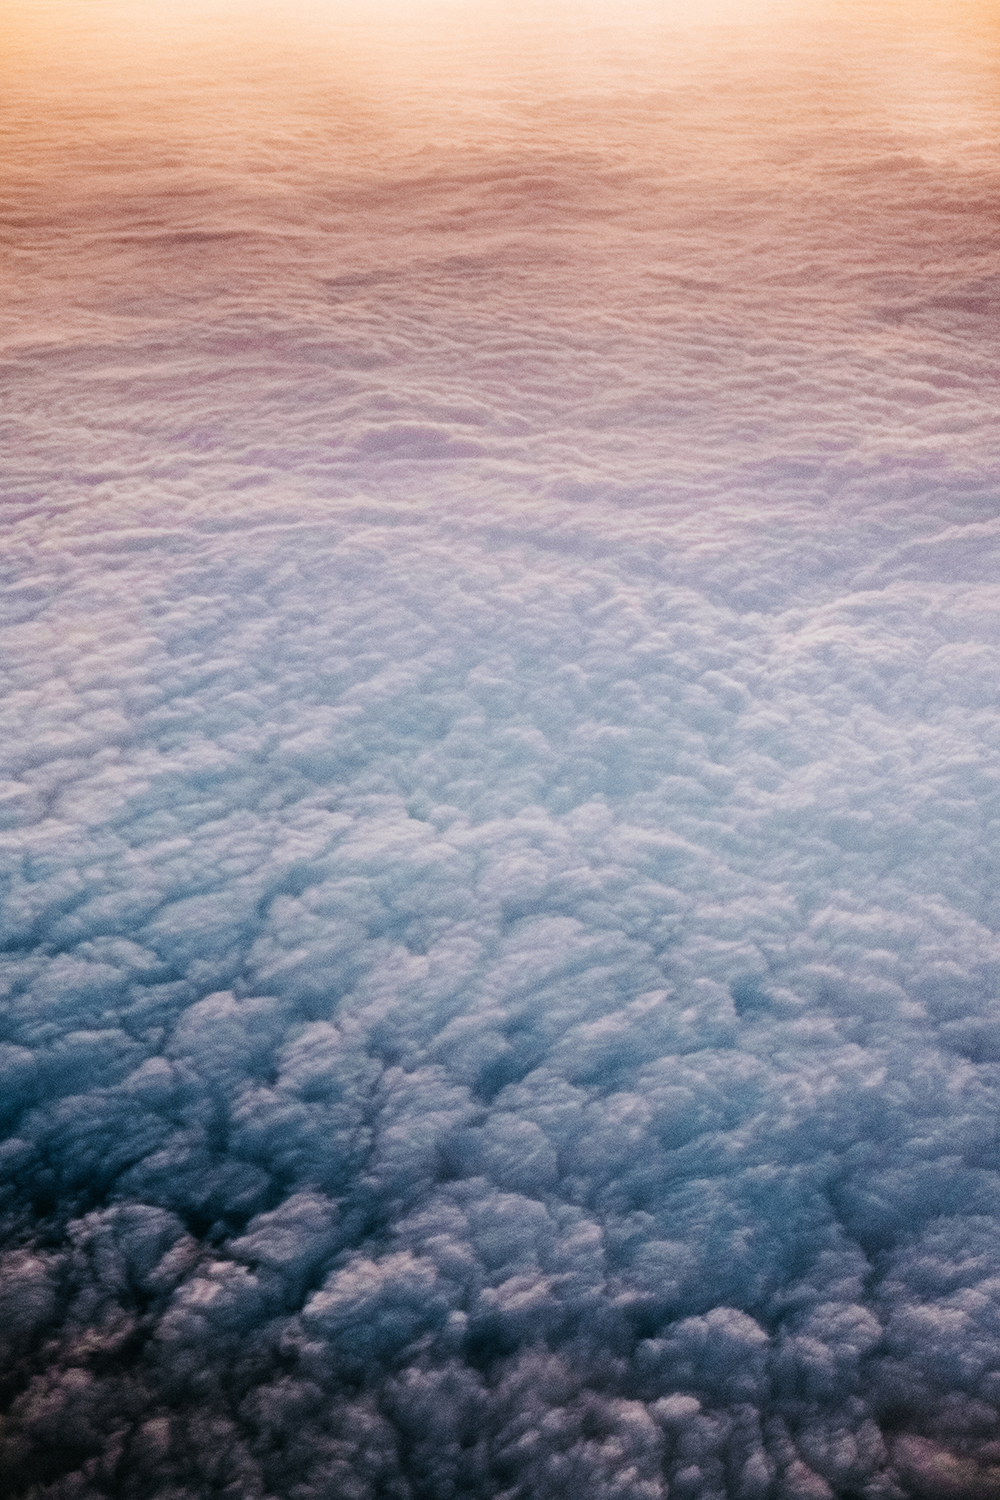 Bed of clouds shot from above